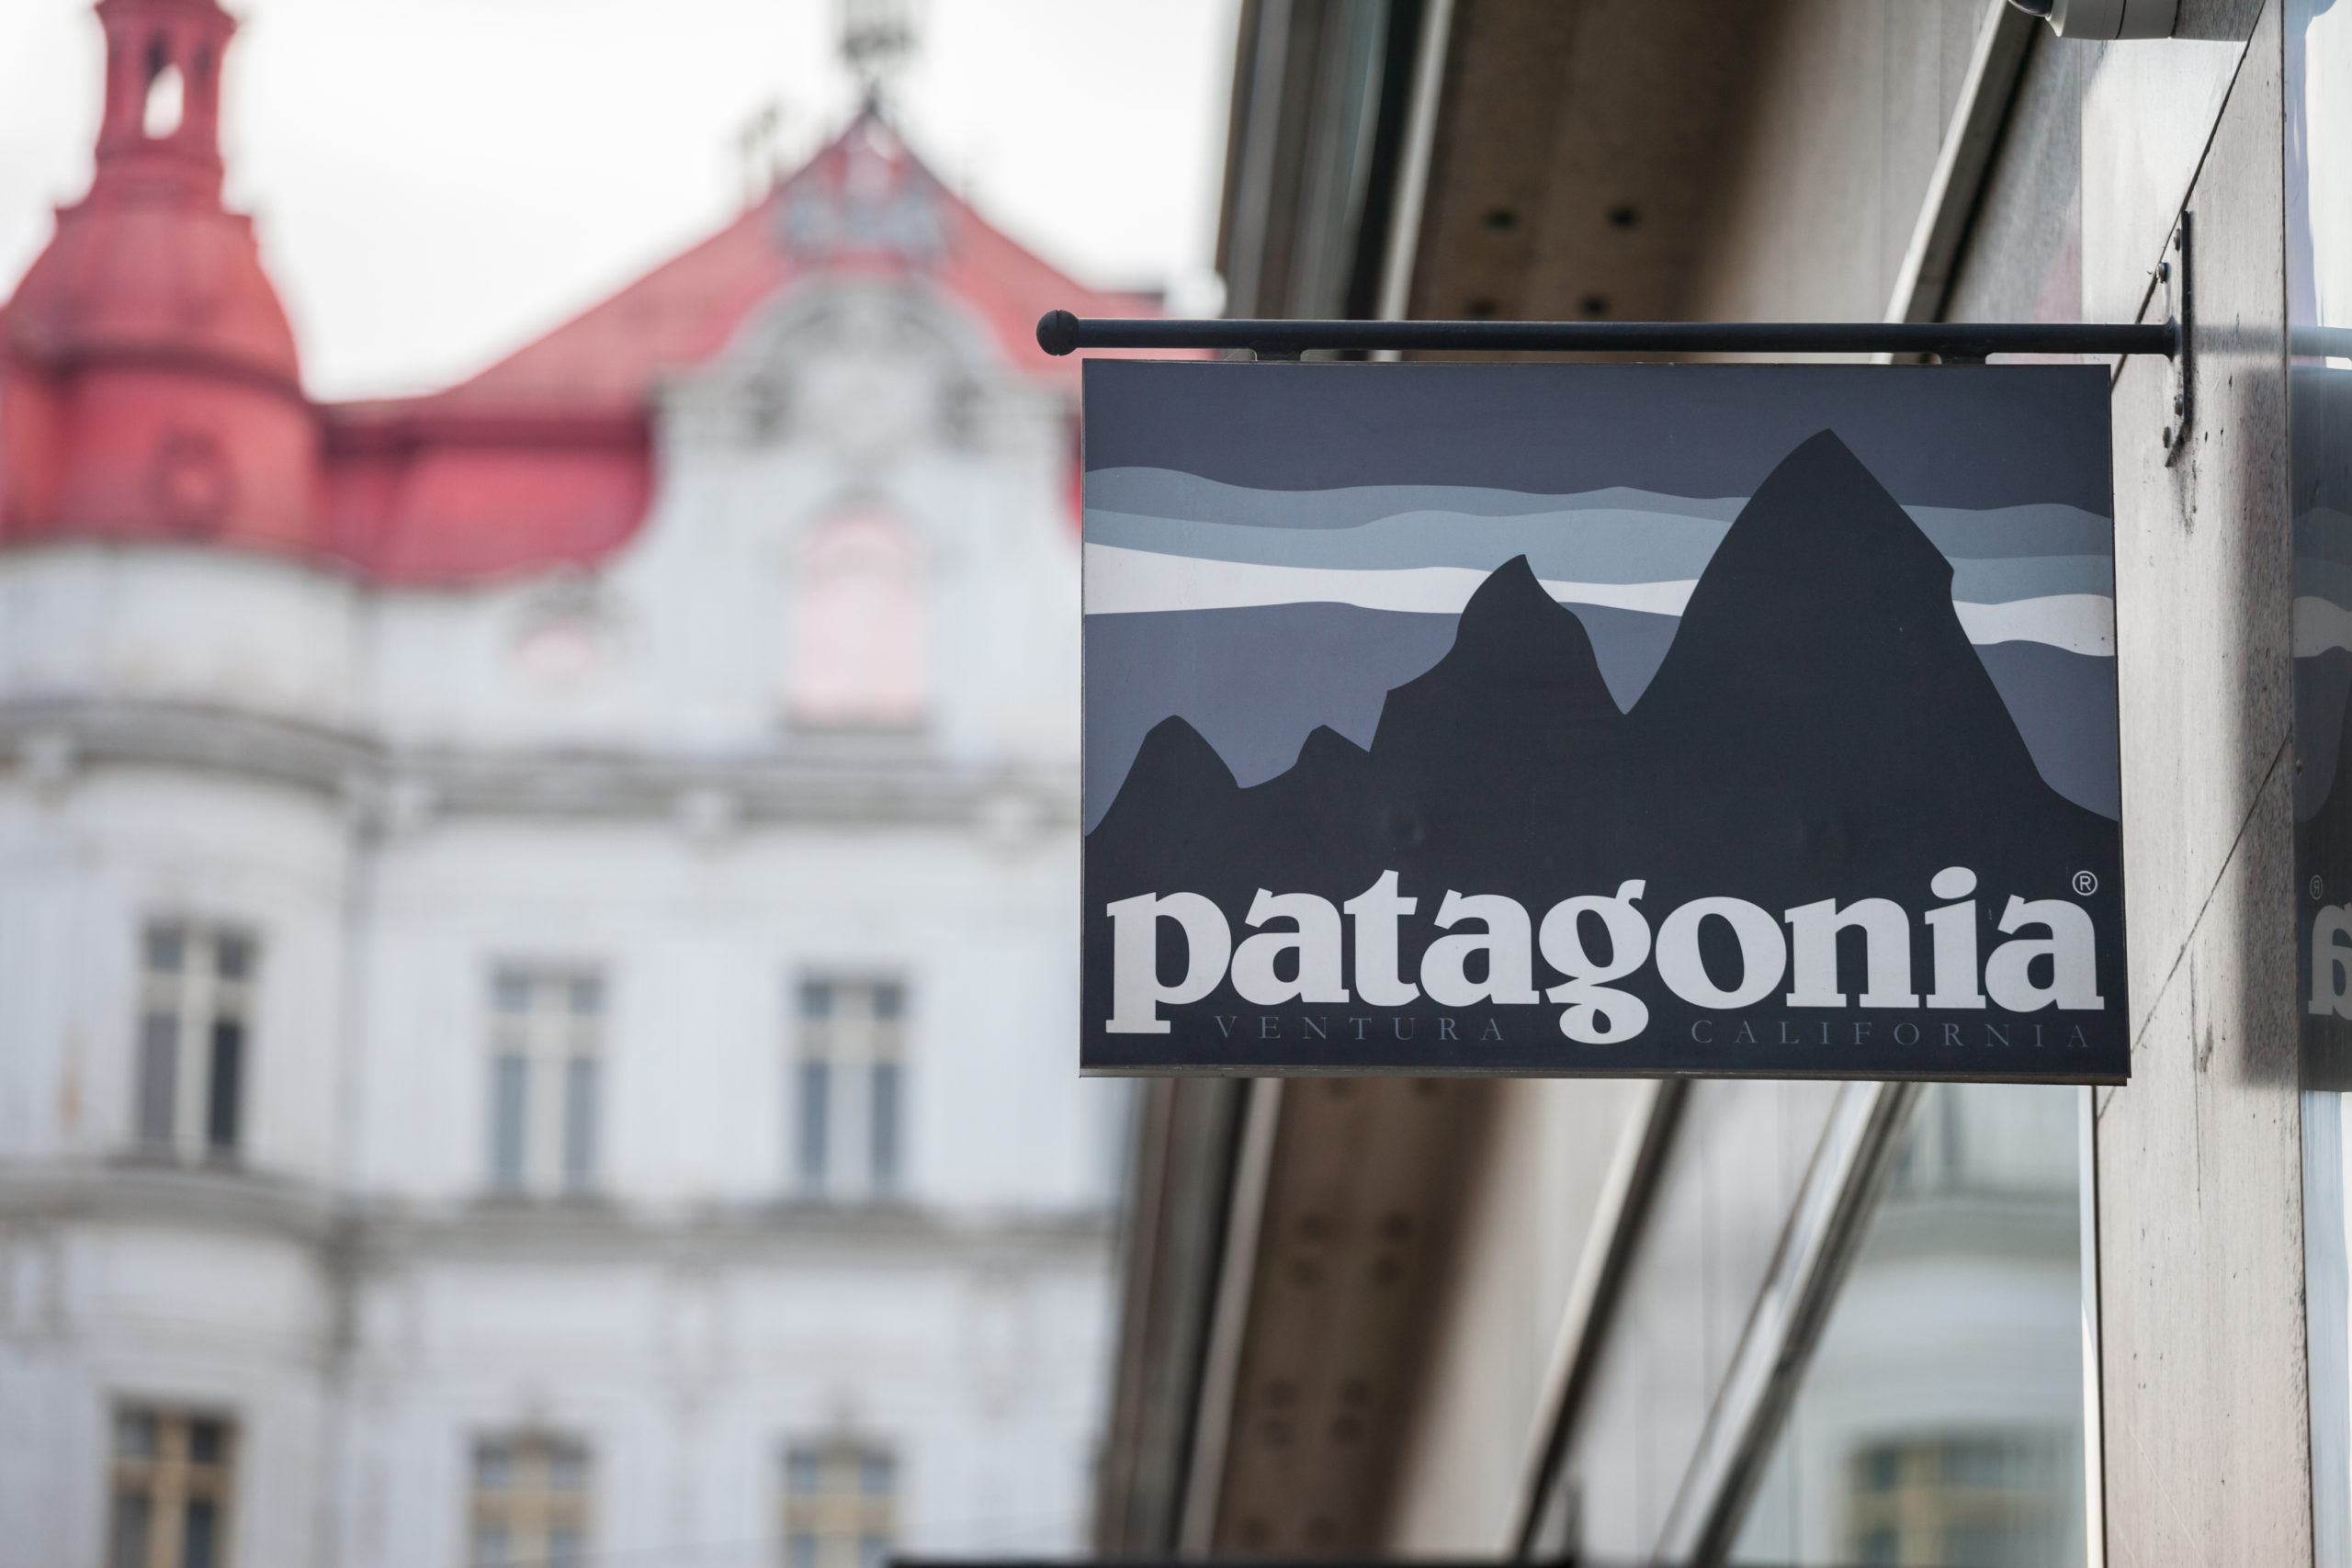 Patagonia logo in front of their store in Prague. Patagonia is an American brand of outdoor fashion, sportswear and sports gear.